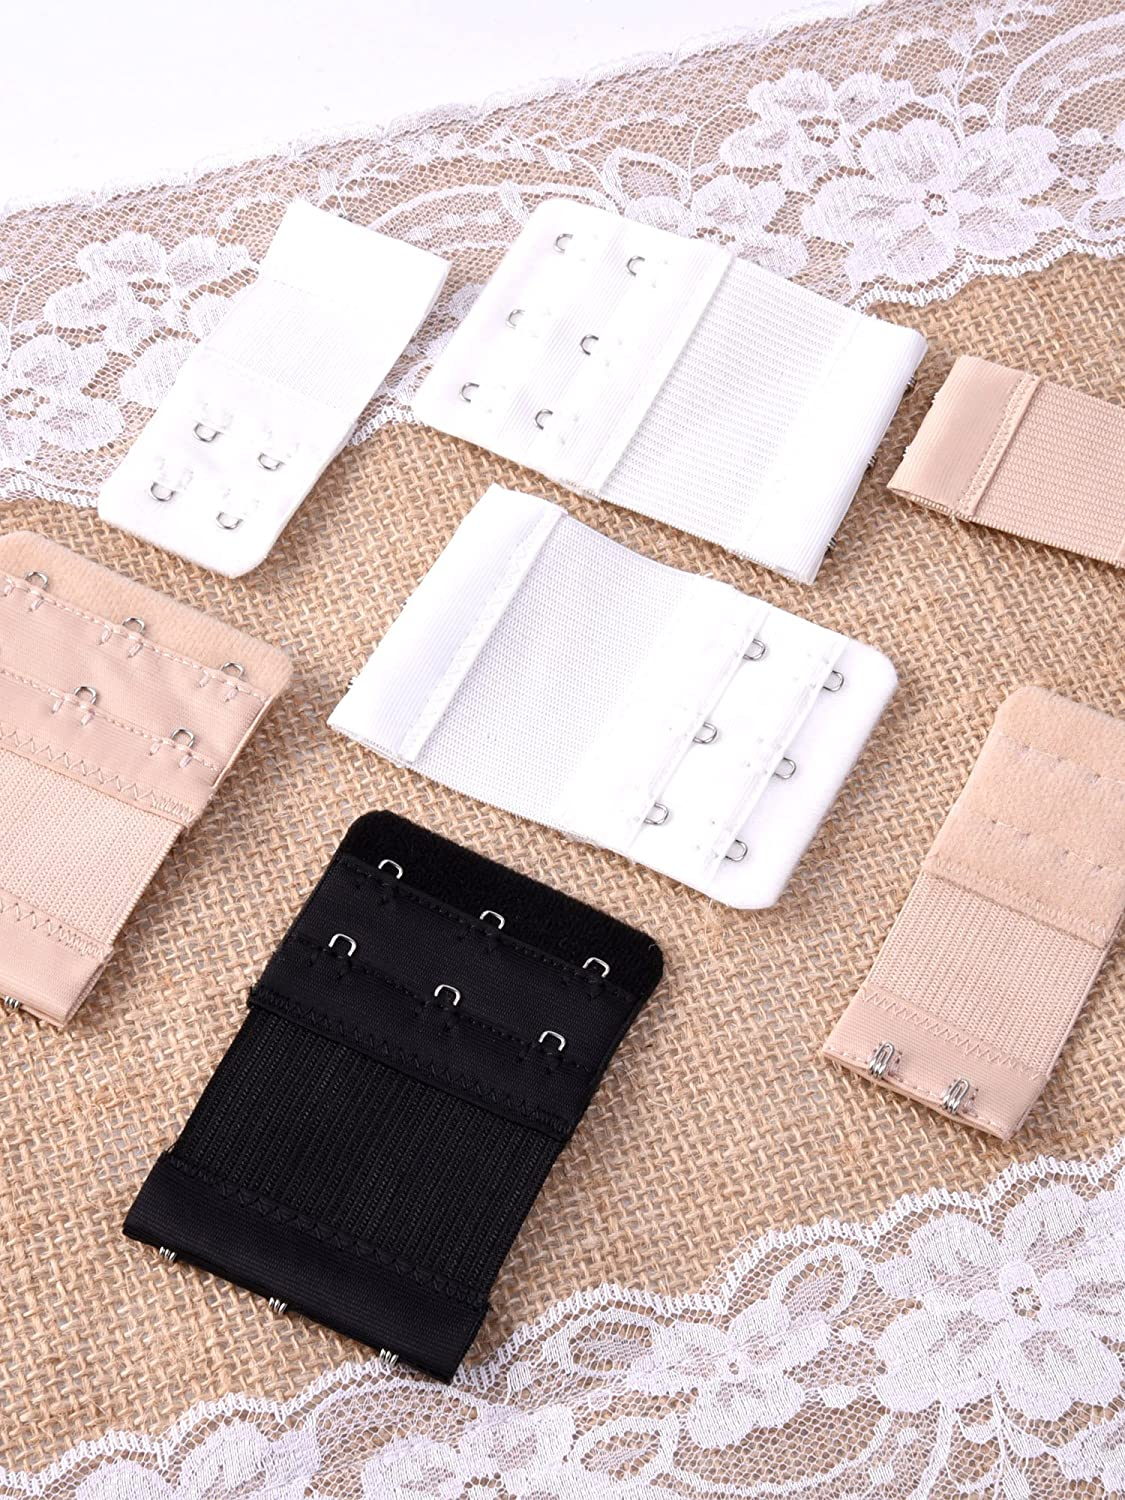 2 Hooks and 3 Hooks 12 Pieces eBoot Bra Extender Elastic Bra Band Extension